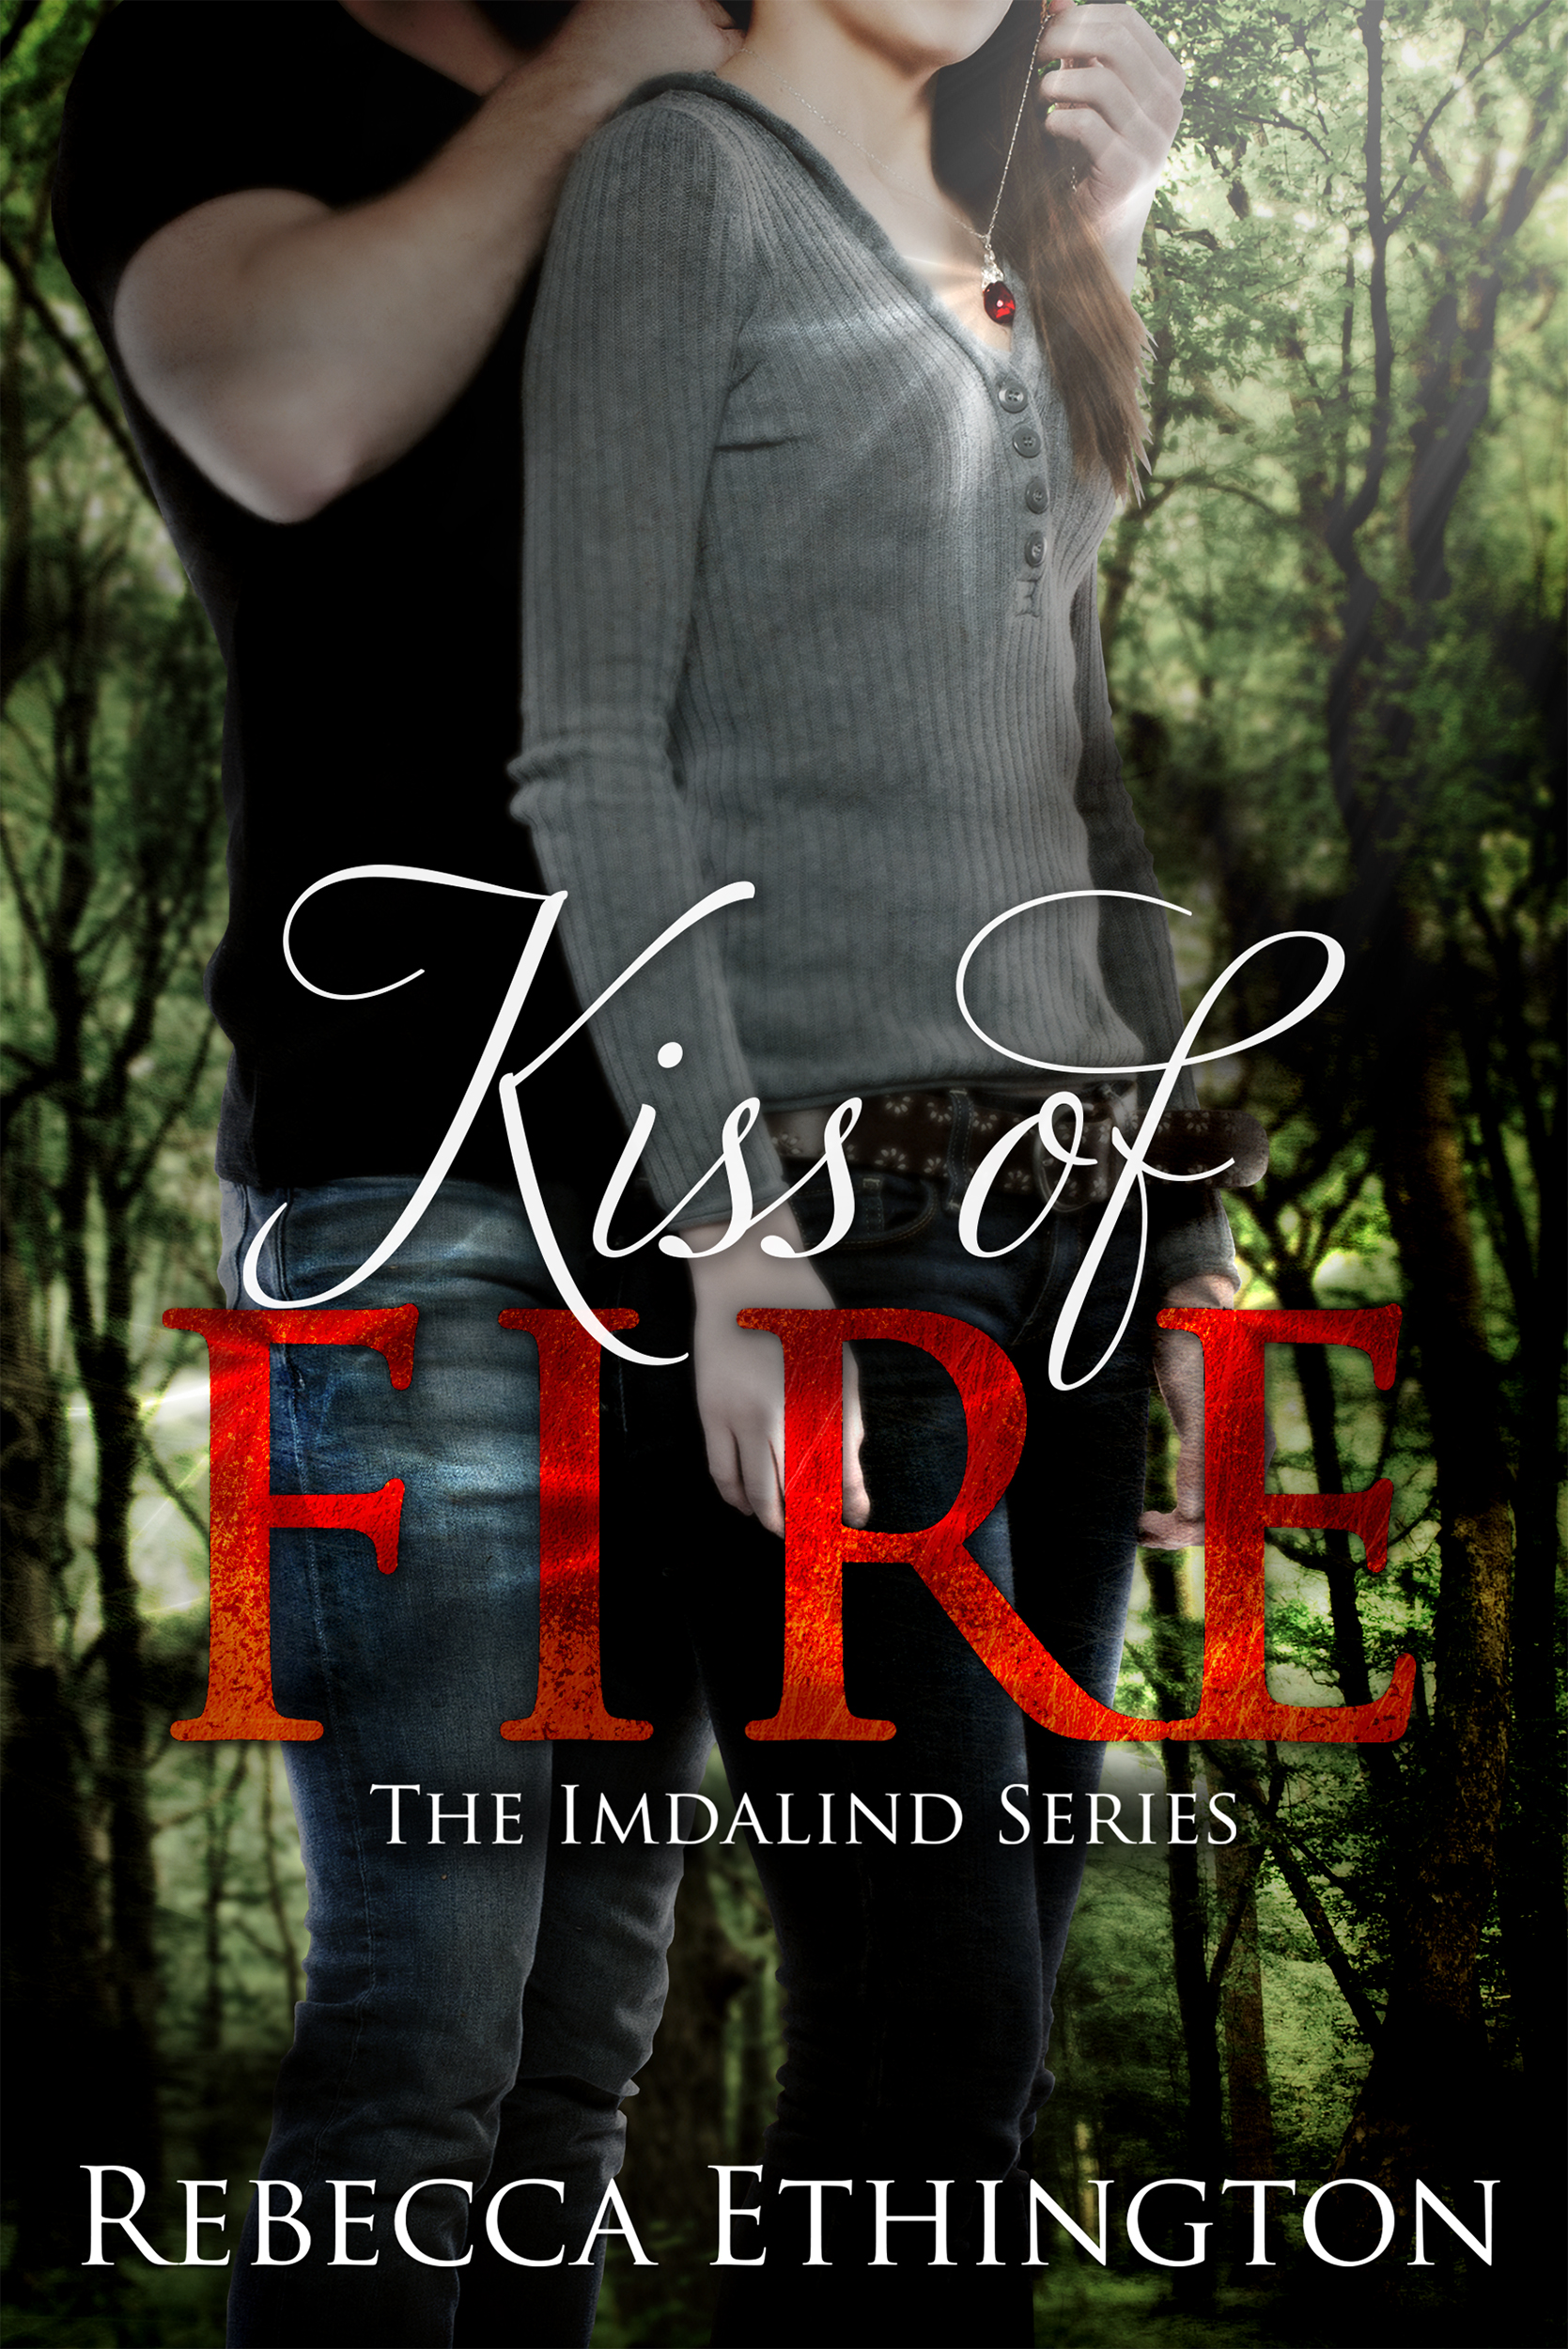 Kiss of Fire AMAZON